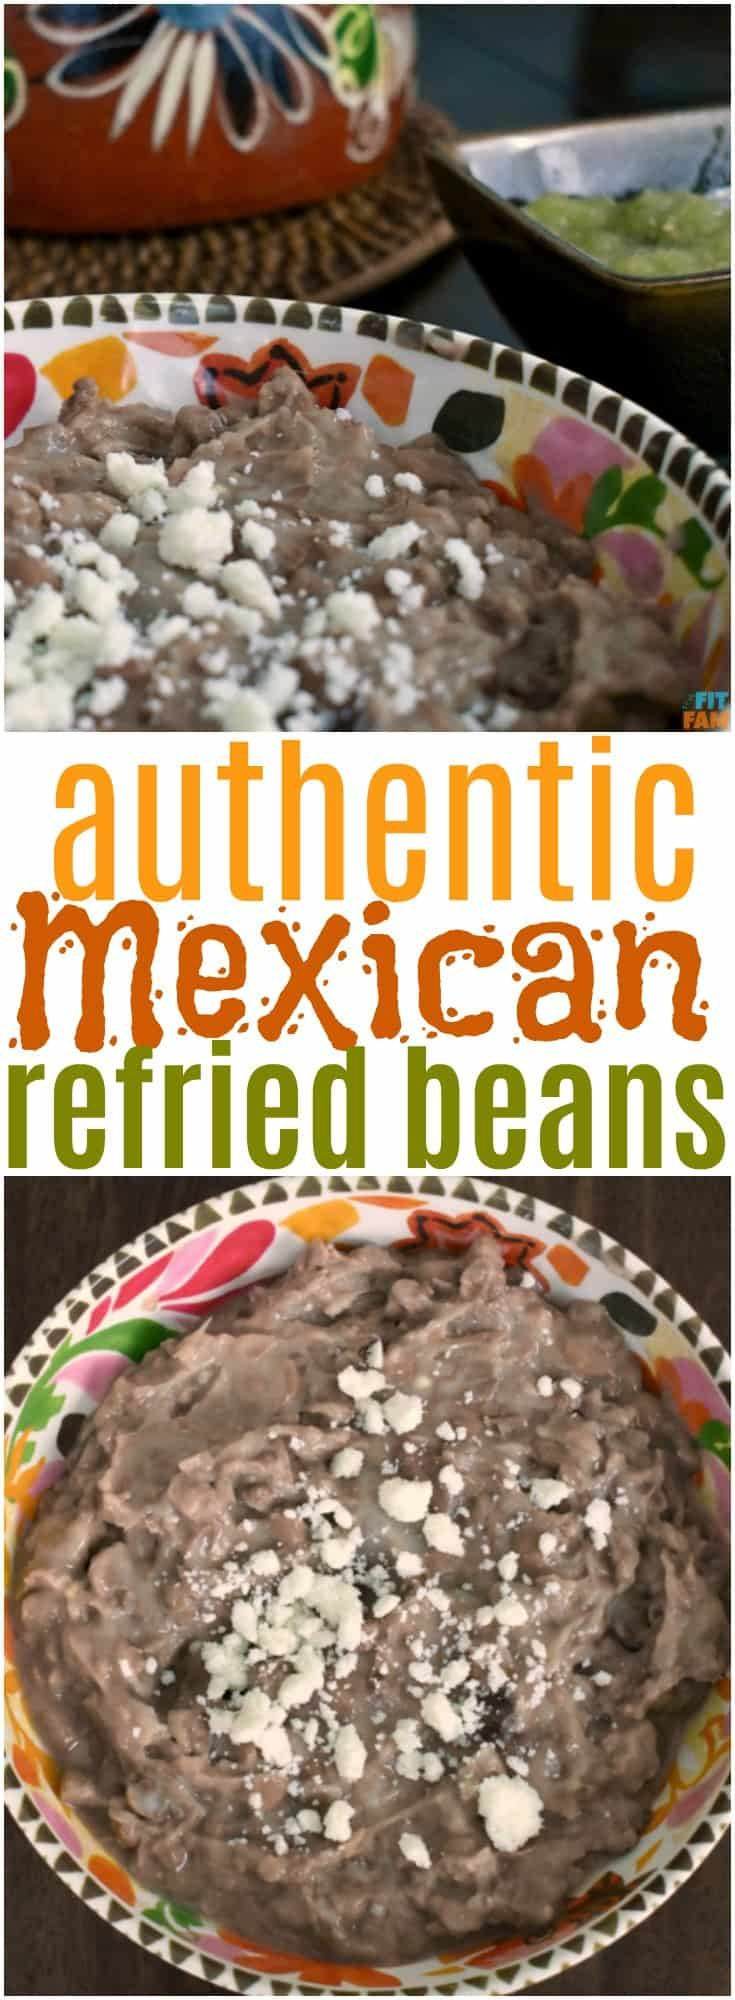 authentic Mexican refried beans- with a SECRET INGREDIENT that makes all the difference!